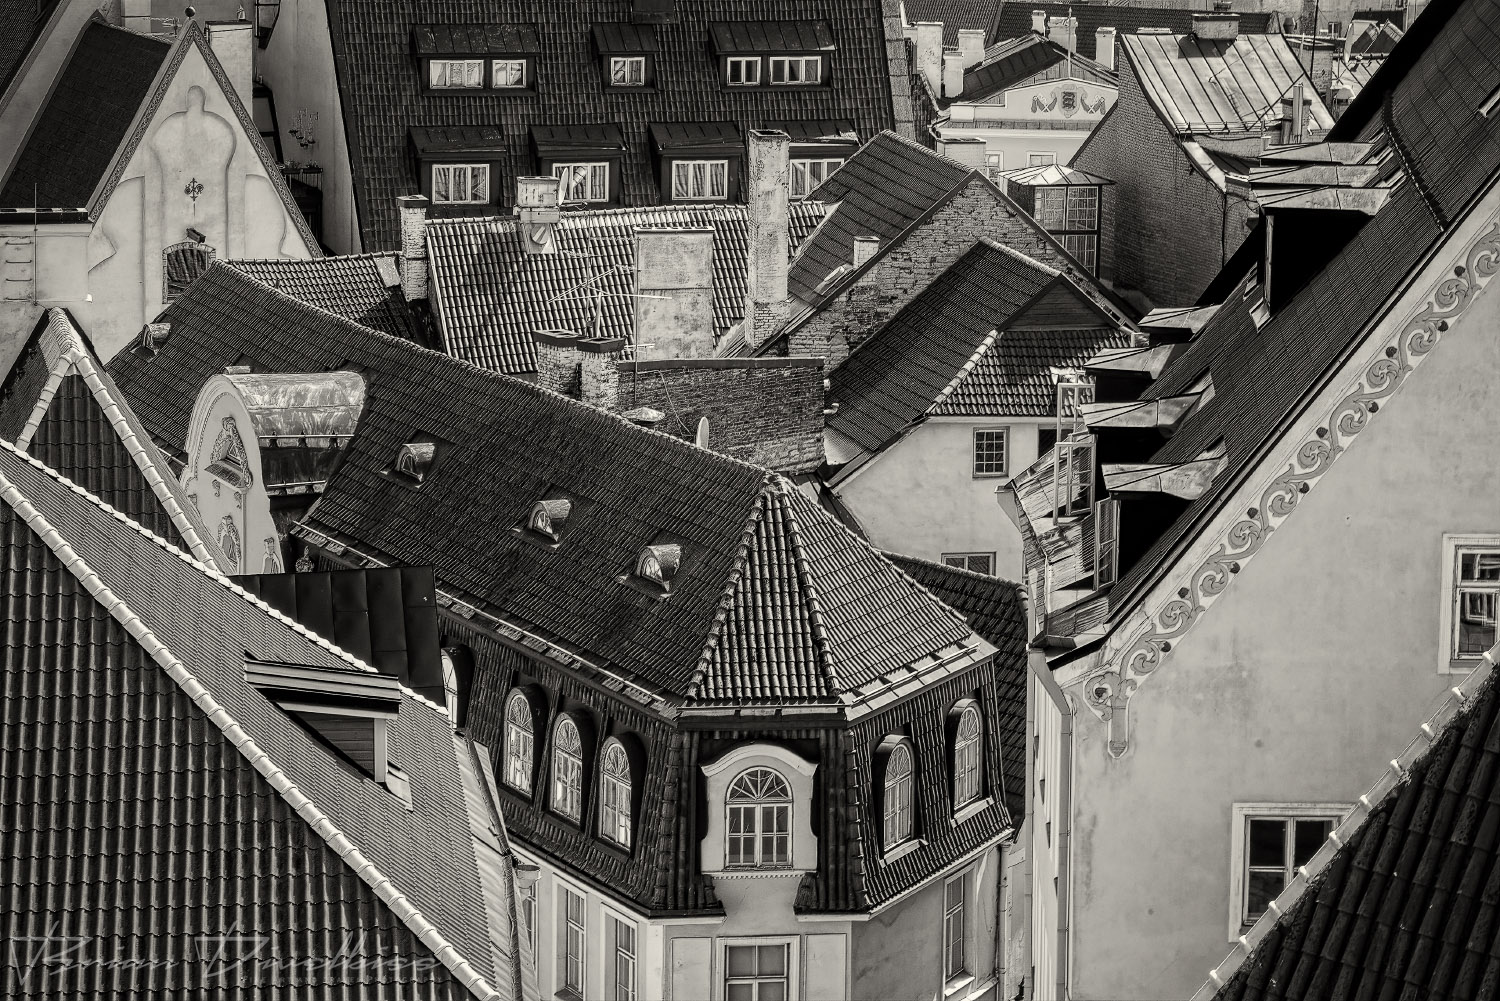 Angled roofs viewed from above in the Lower Old Town of Tallinn, Estonia in black and white.